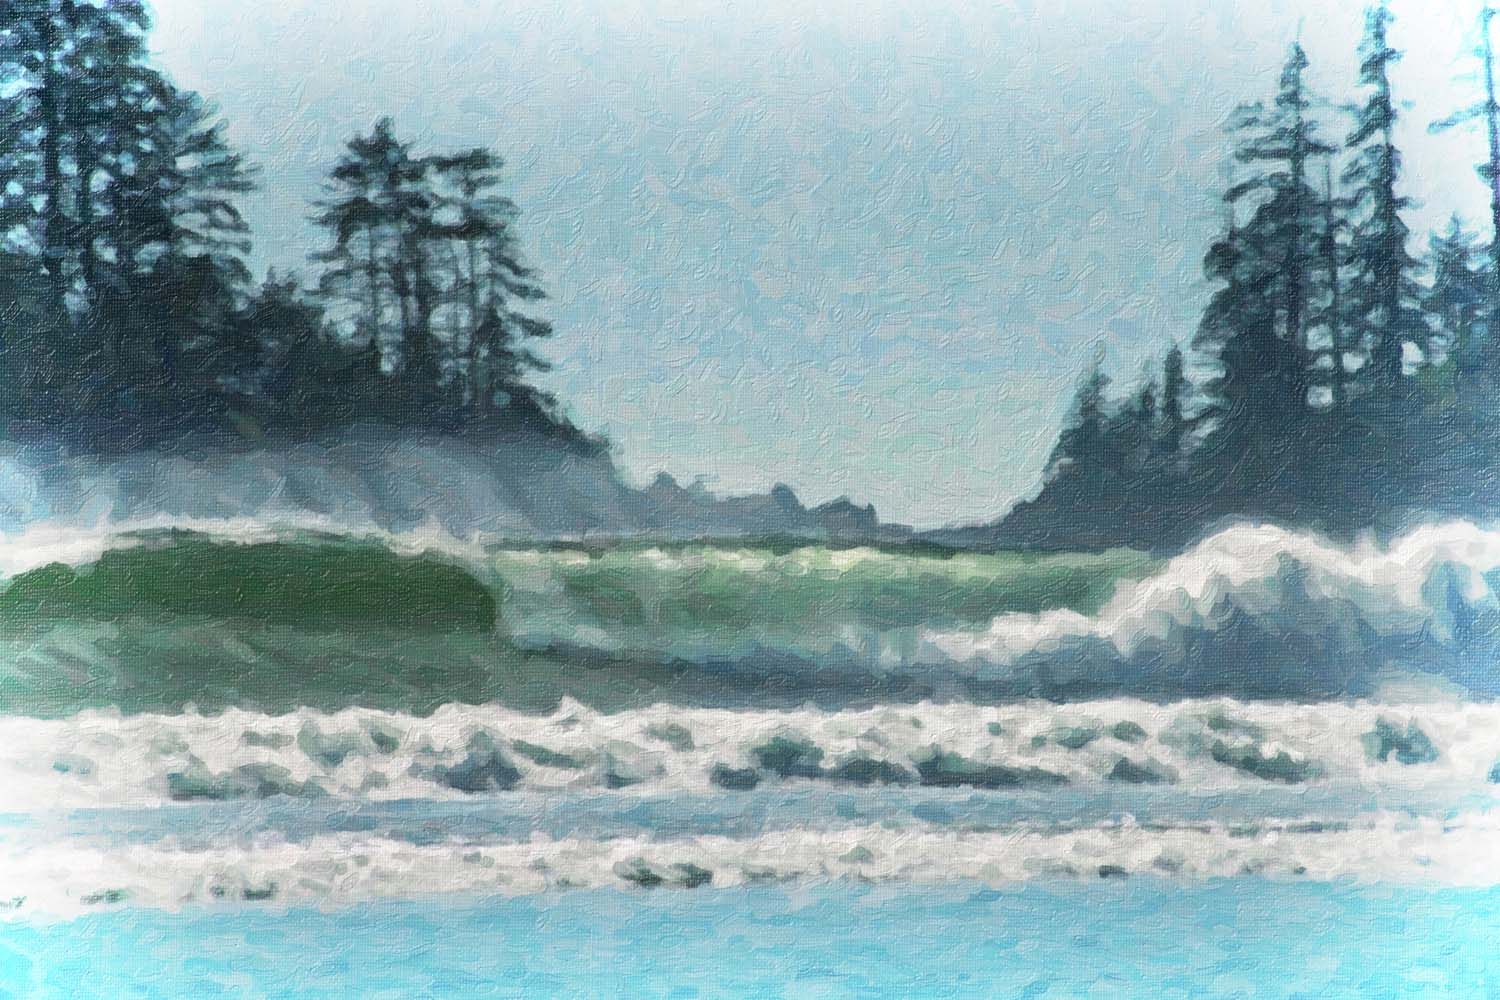 large waves breaking on the shore